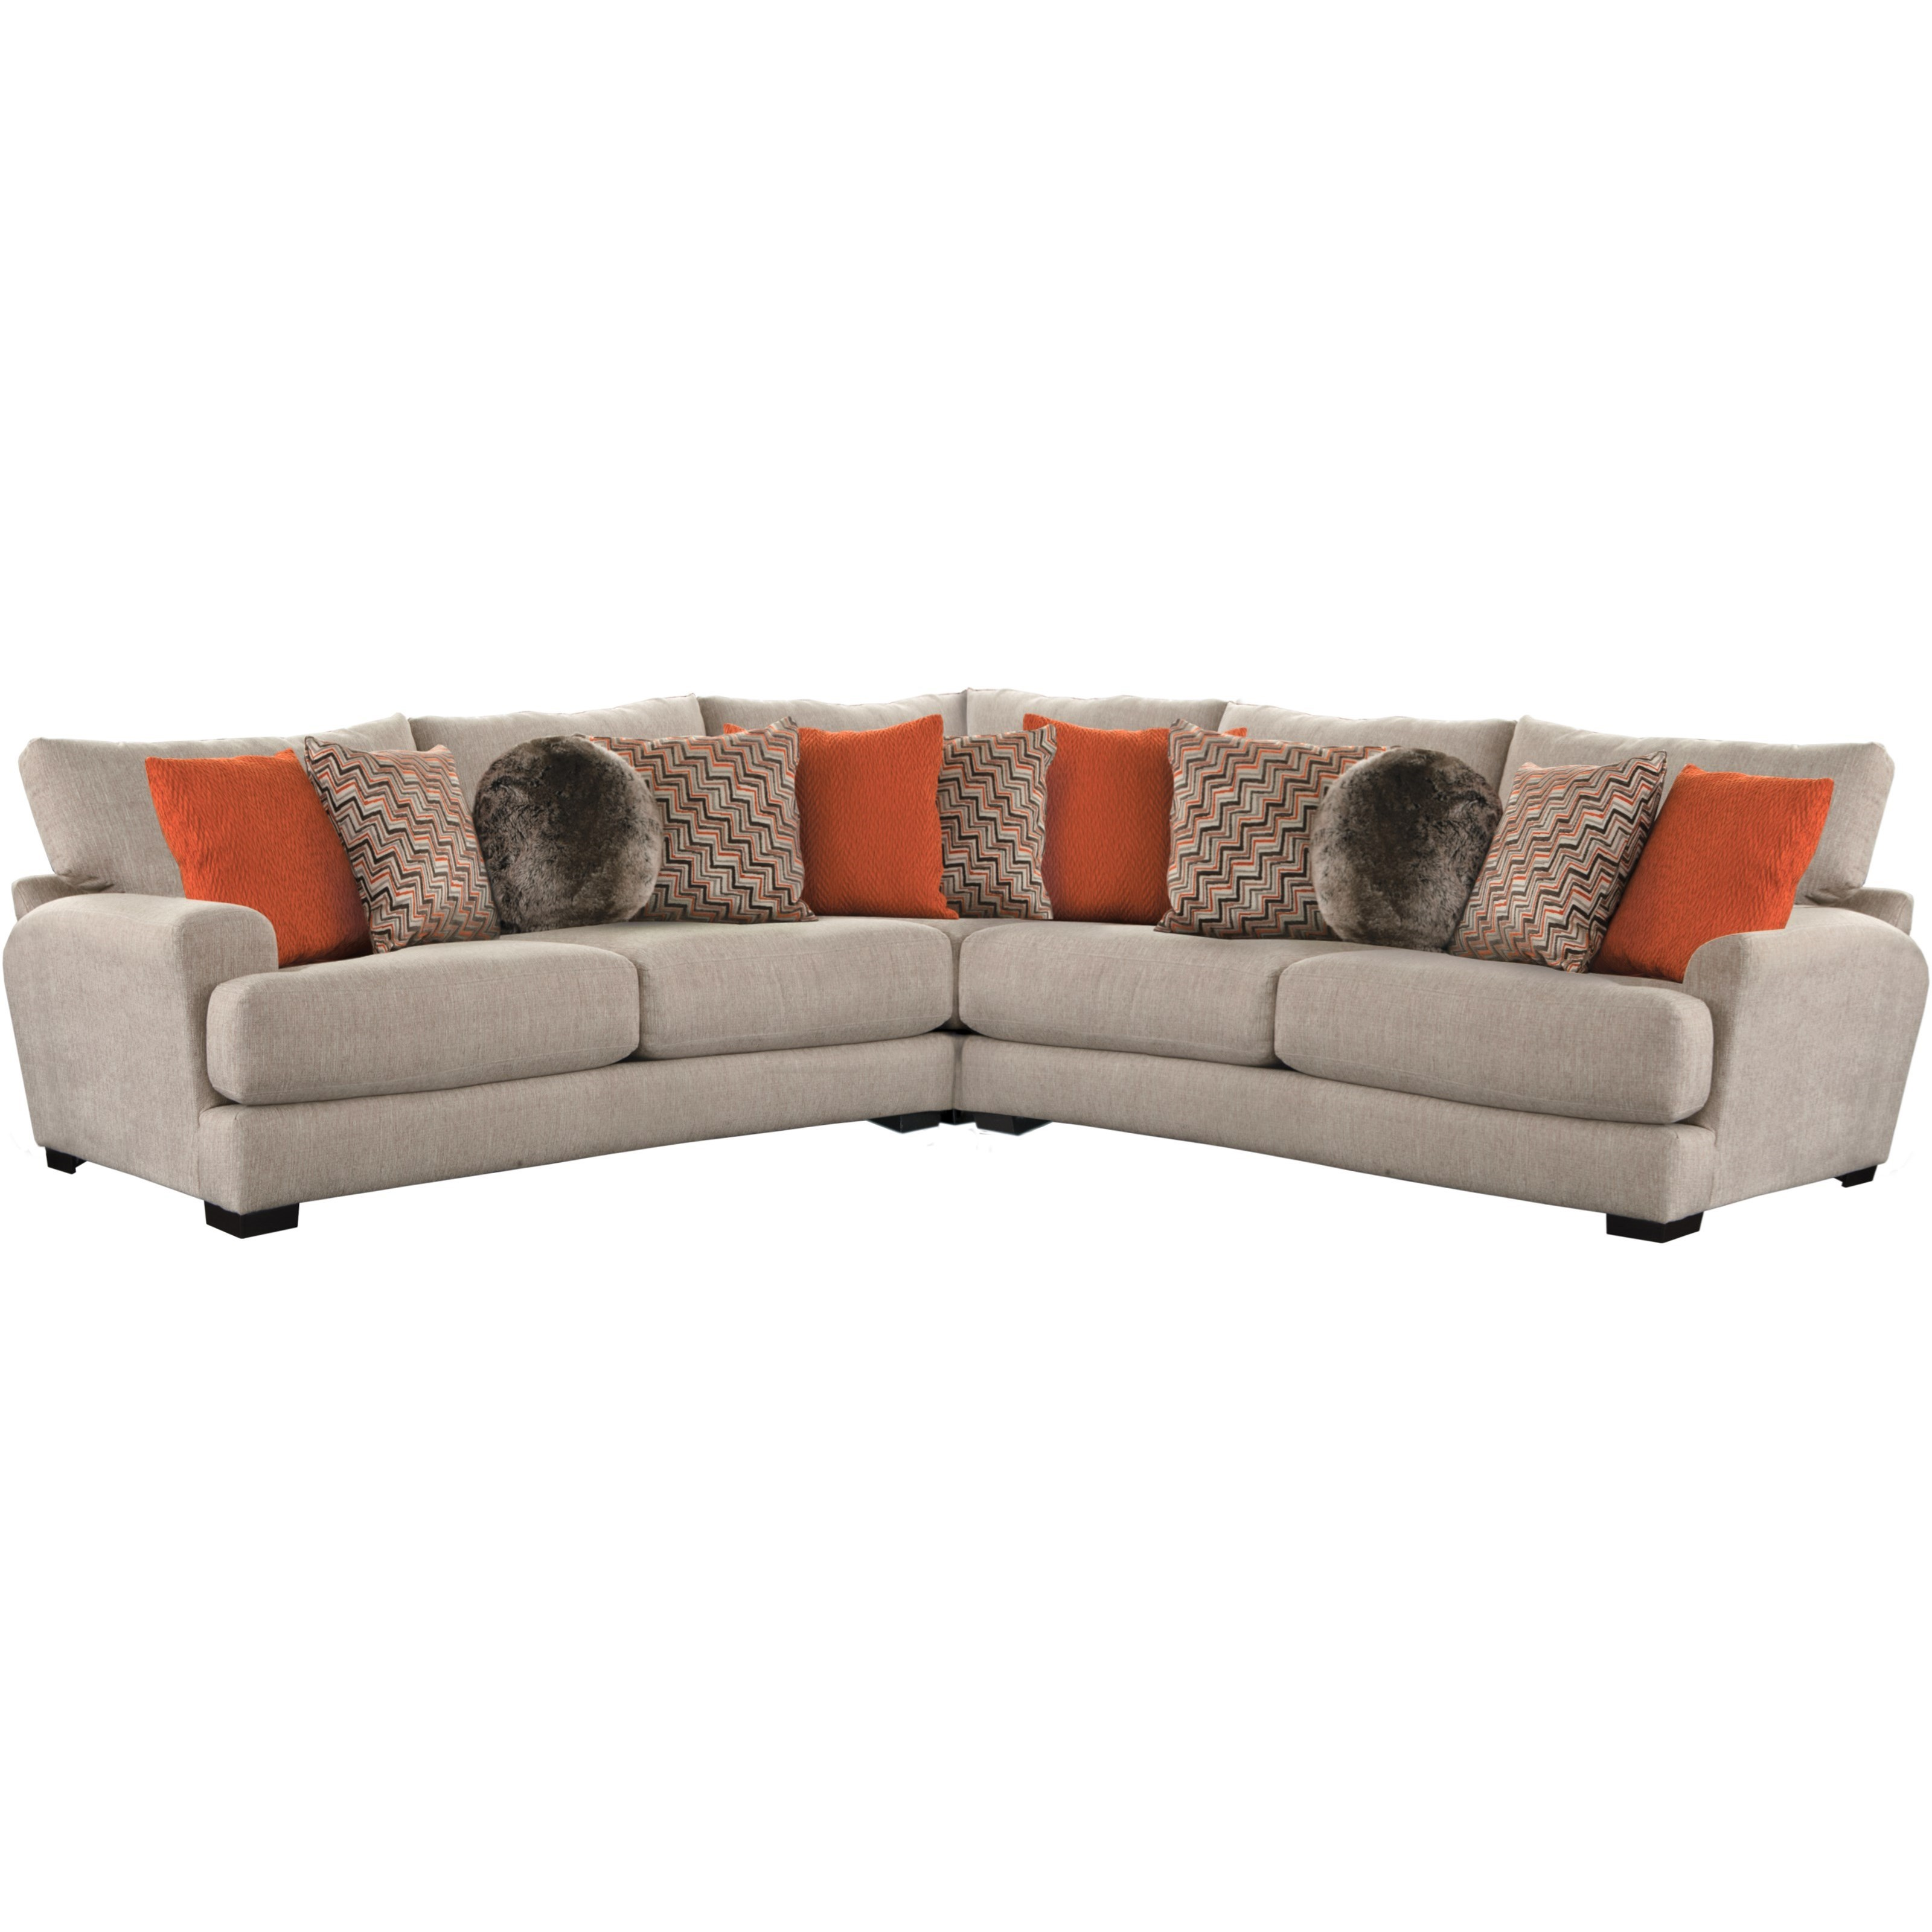 Ava Sectional Sofa with 4 Seats & USB Ports by Jackson Furniture at A1 Furniture & Mattress